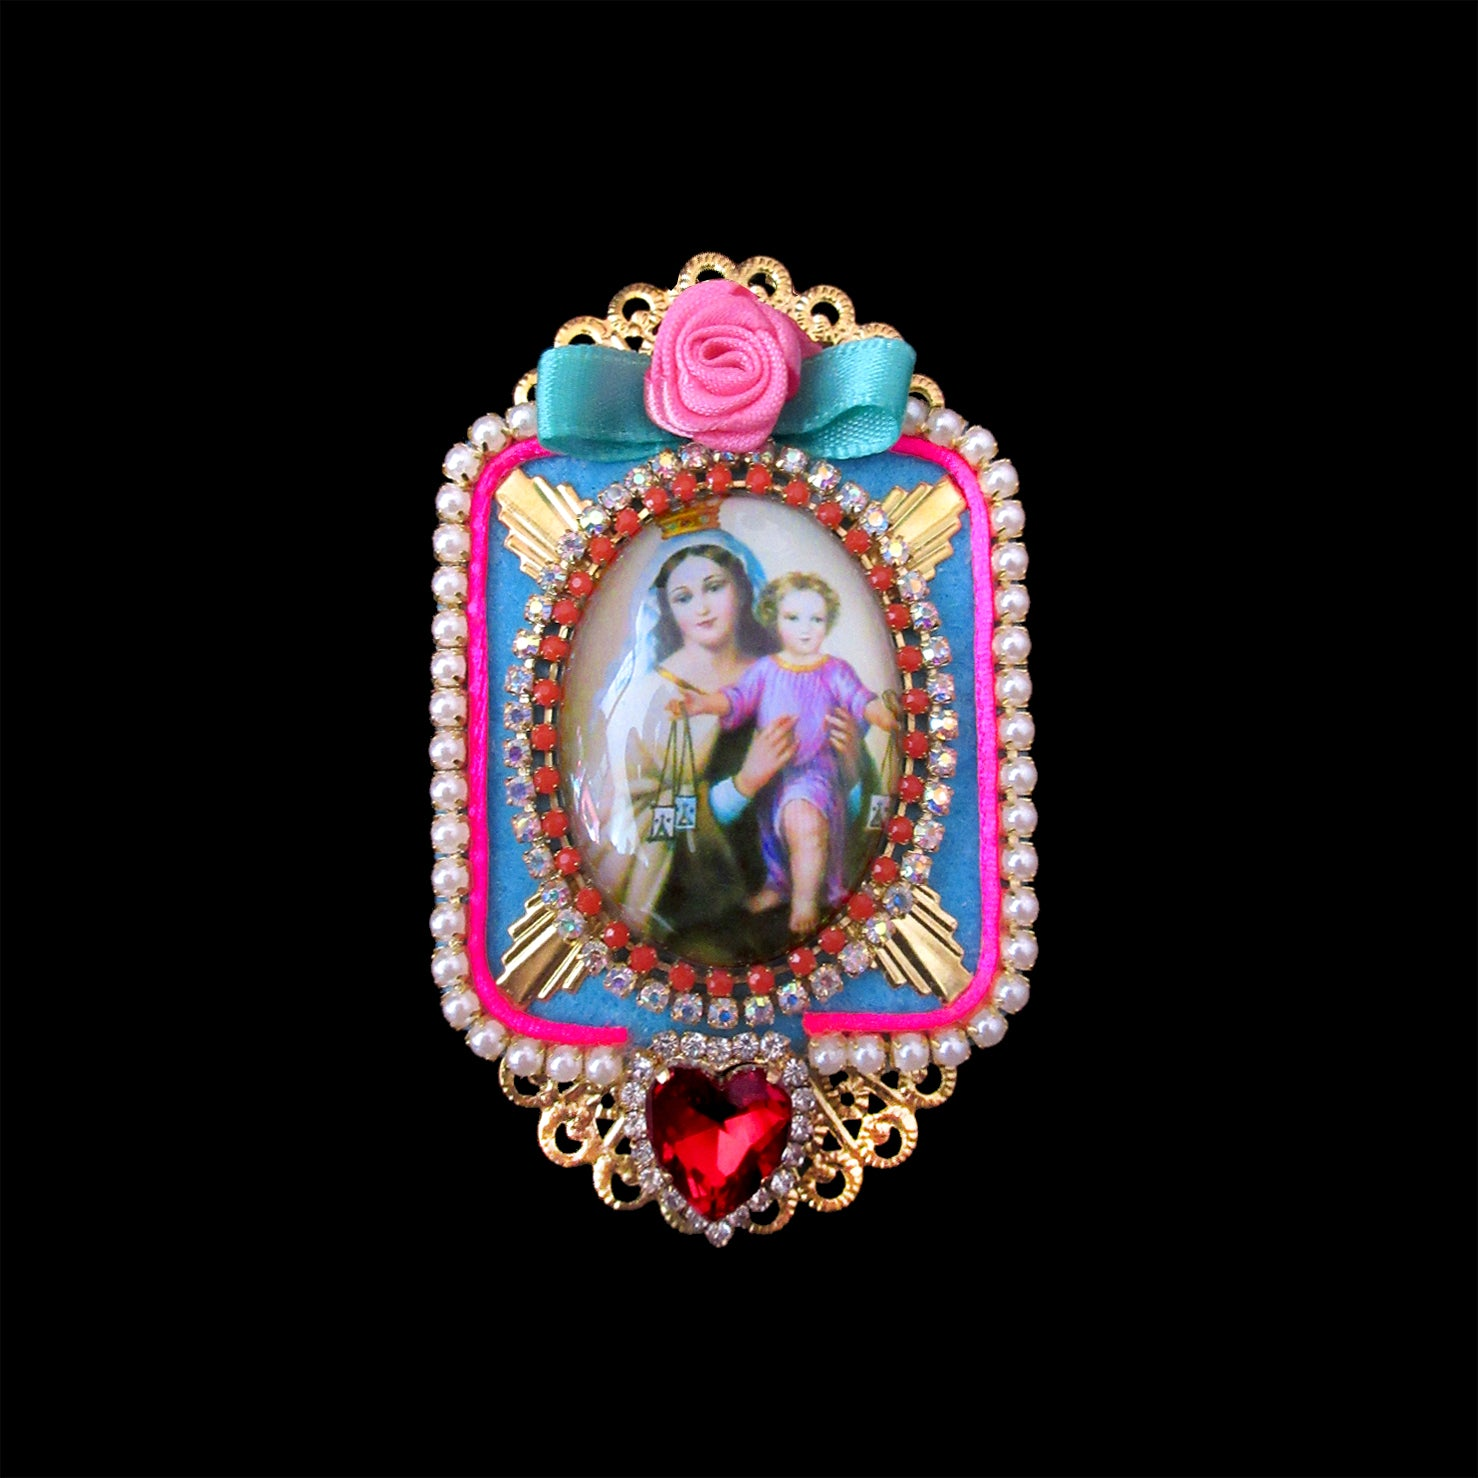 mouchkine jewelry baroque and elegant madonna brooch